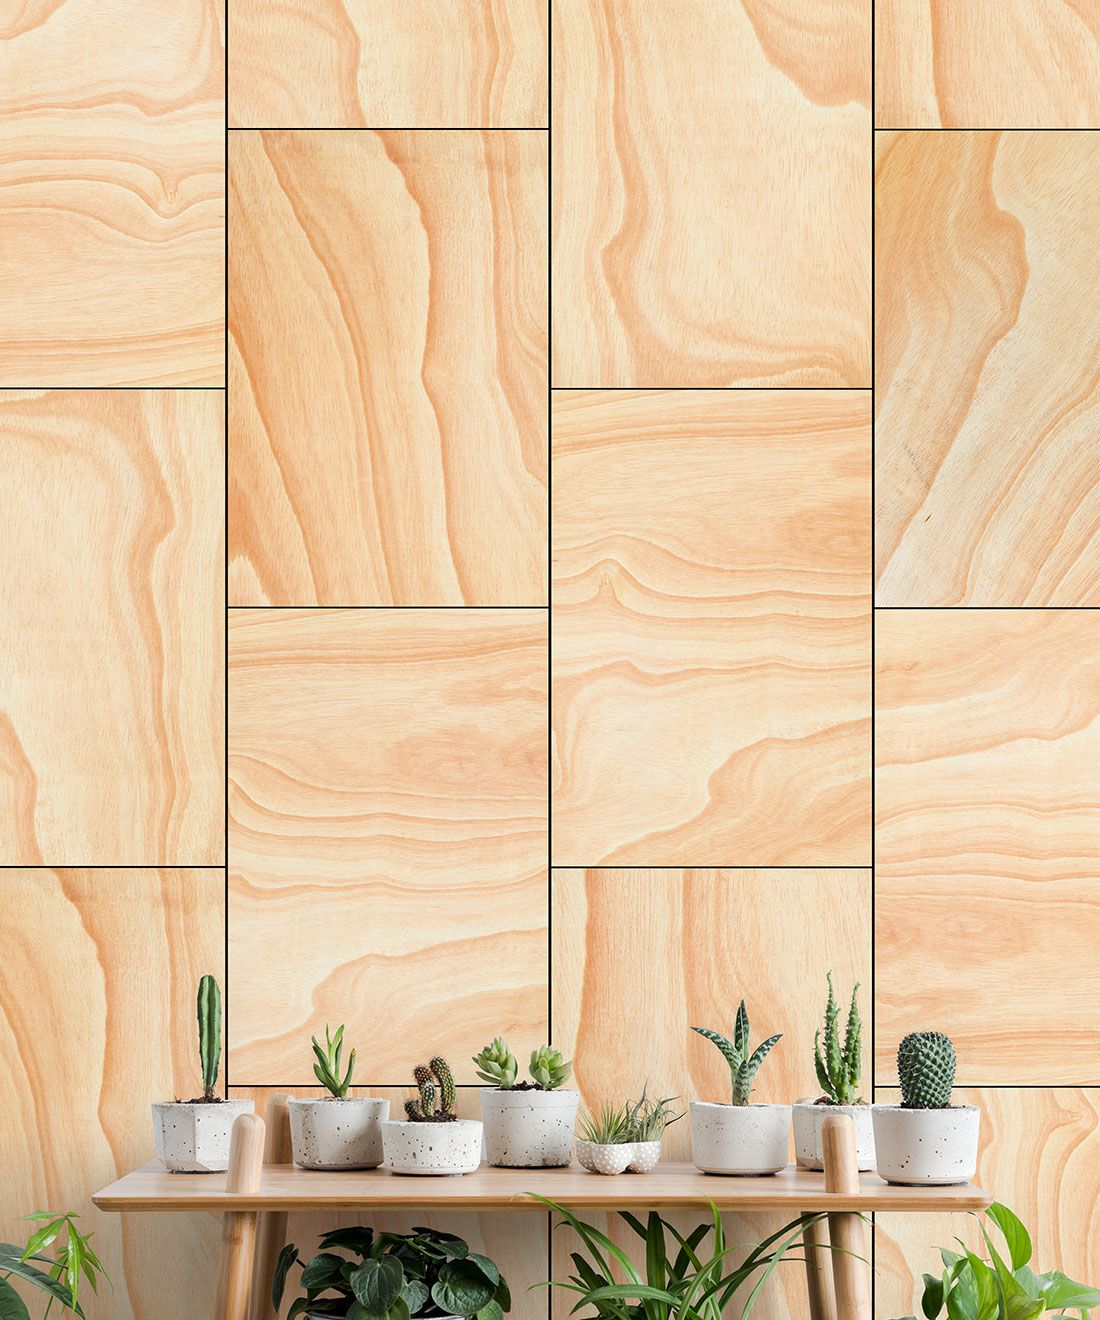 Ply Wood Wallpaper • Light Brown Wallpaper •Wood Grain Wallpaper with a table with a display of small cacti